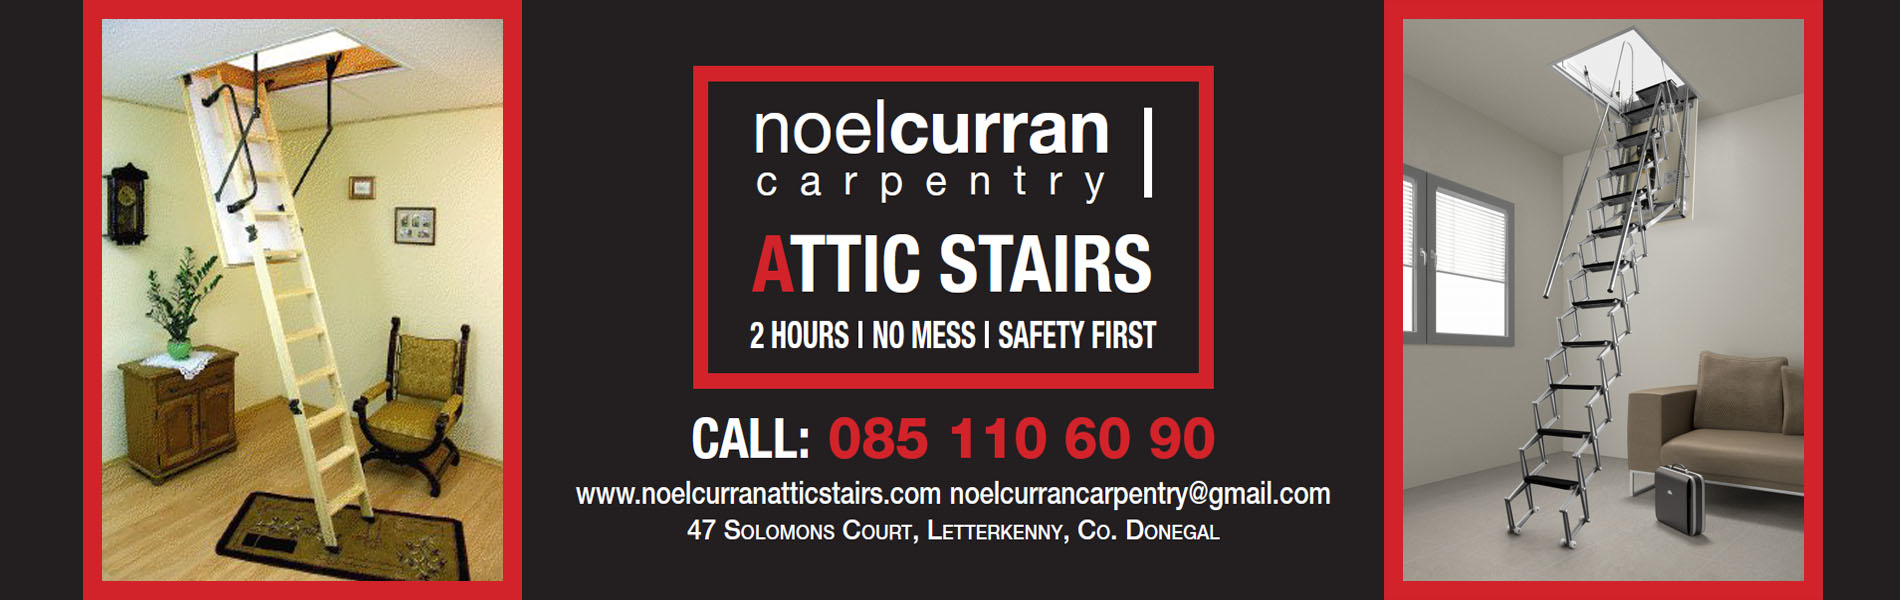 Noel Curran Attic Stairs The Largest Range Of Attic Stairs